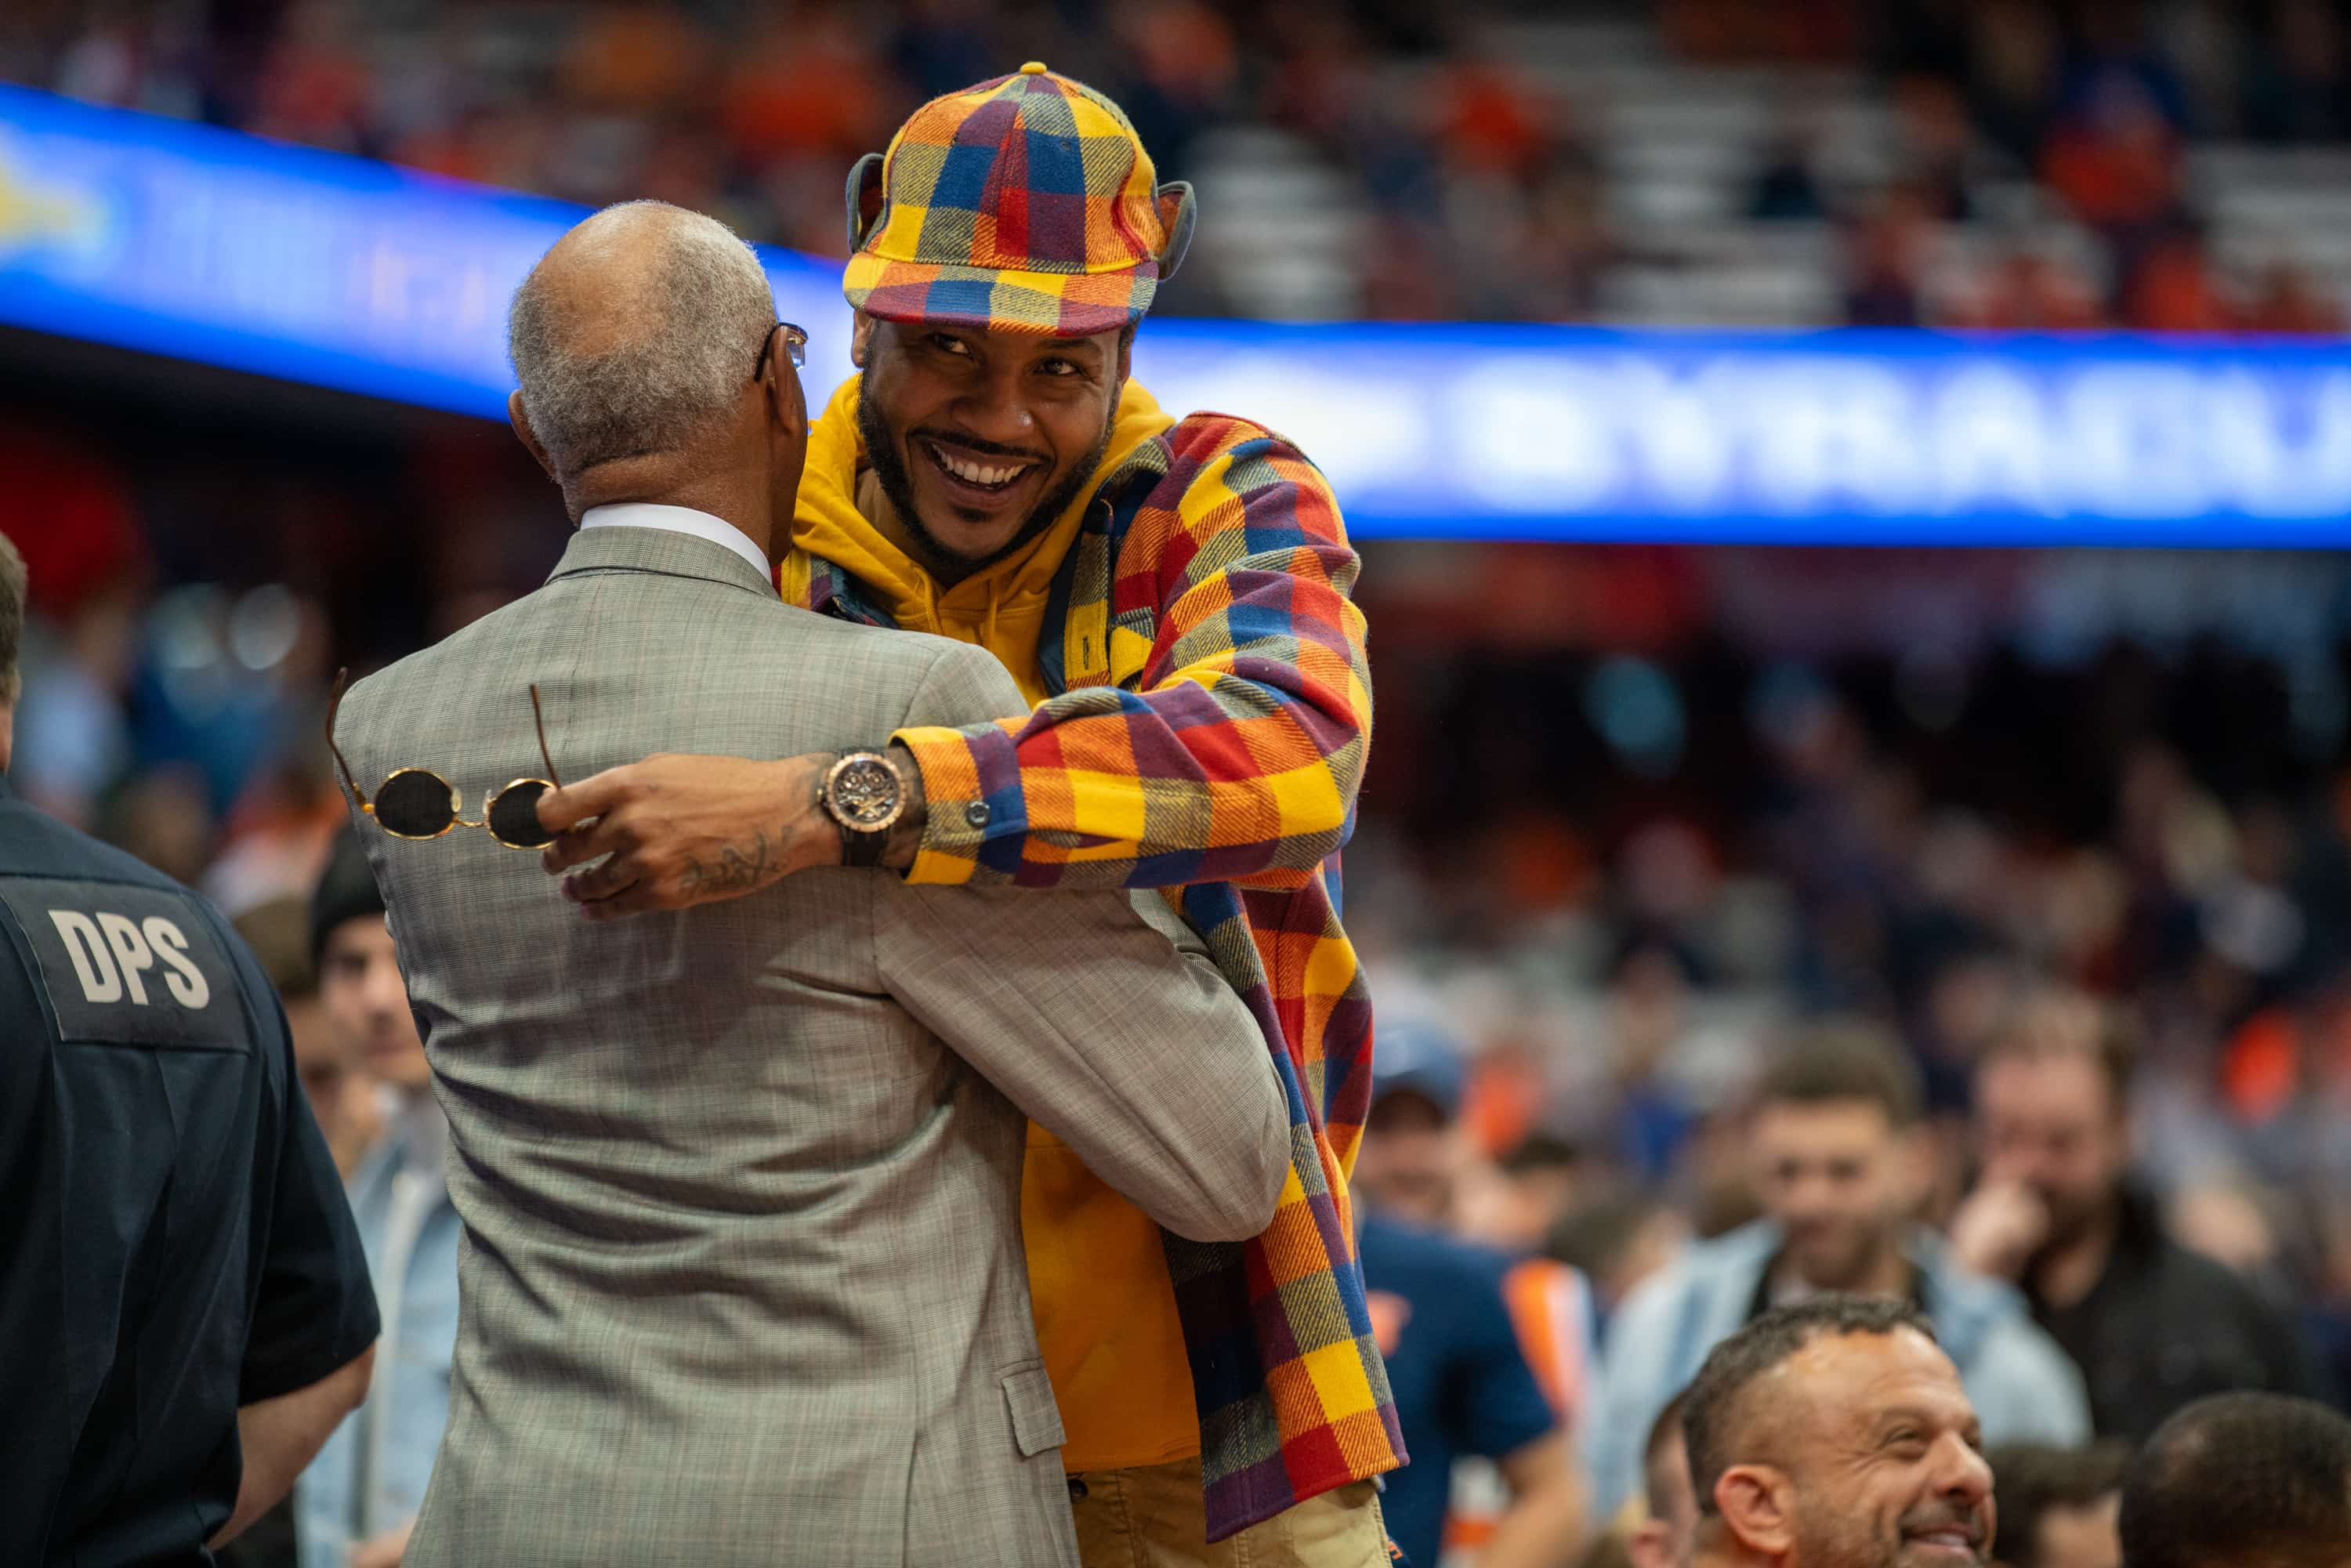 Former SU basketball great Carmelo Anthony attends the UVA vs Syracuse game at the Carrier Dome on Nov. 6